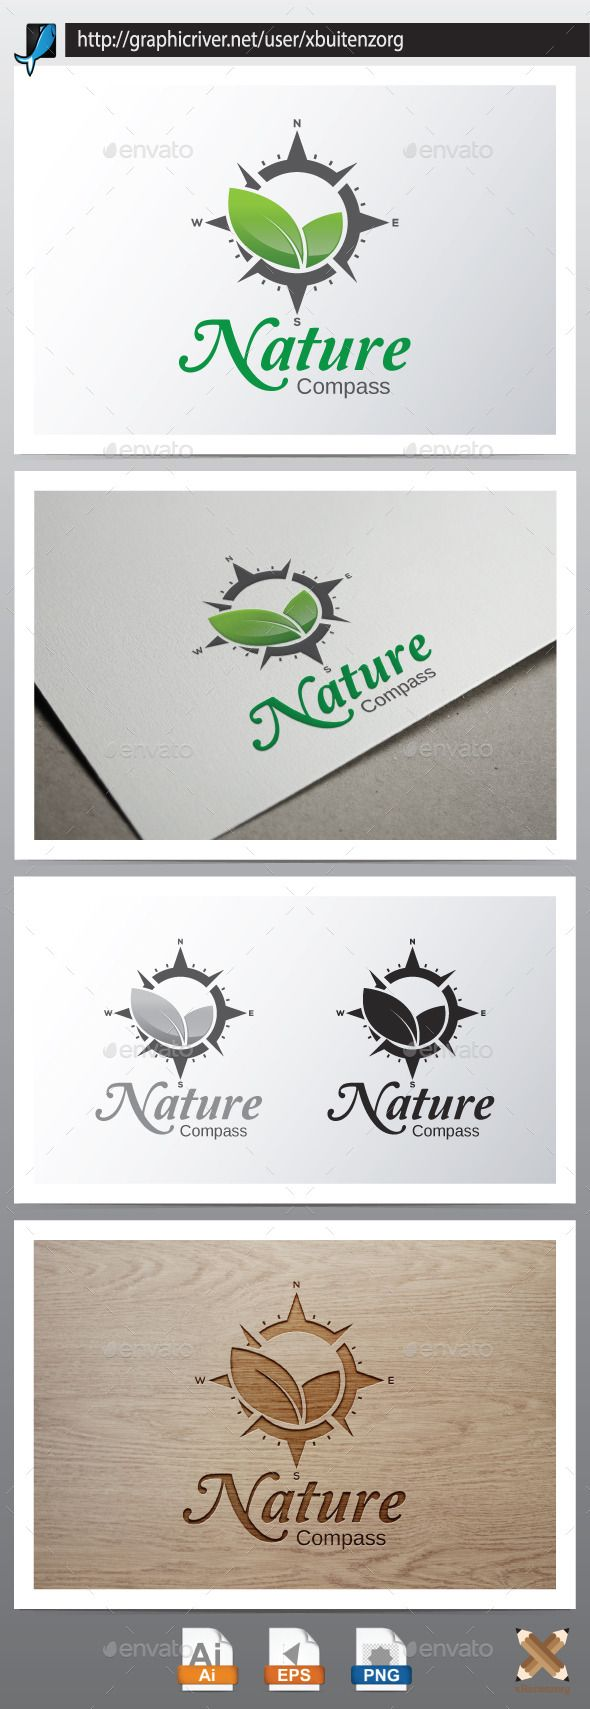 Nature Compass — Vector EPS #tourist #adventure • Available here → https://graphicriver.net/item/nature-compass/10160460?ref=pxcr